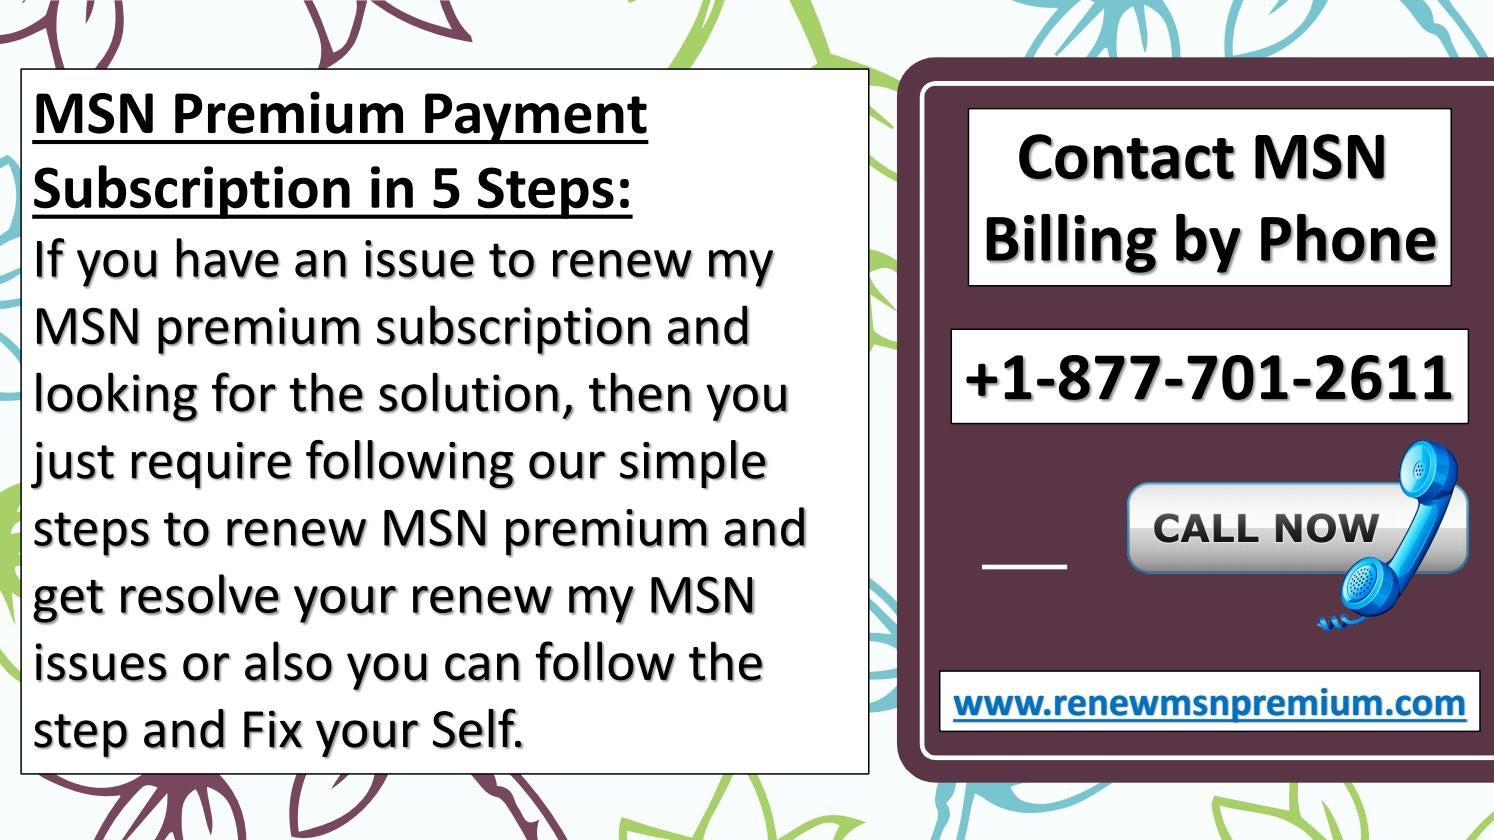 Contact MSN Billing by Phone | +1-877-701-2611 by grete2017 - issuu